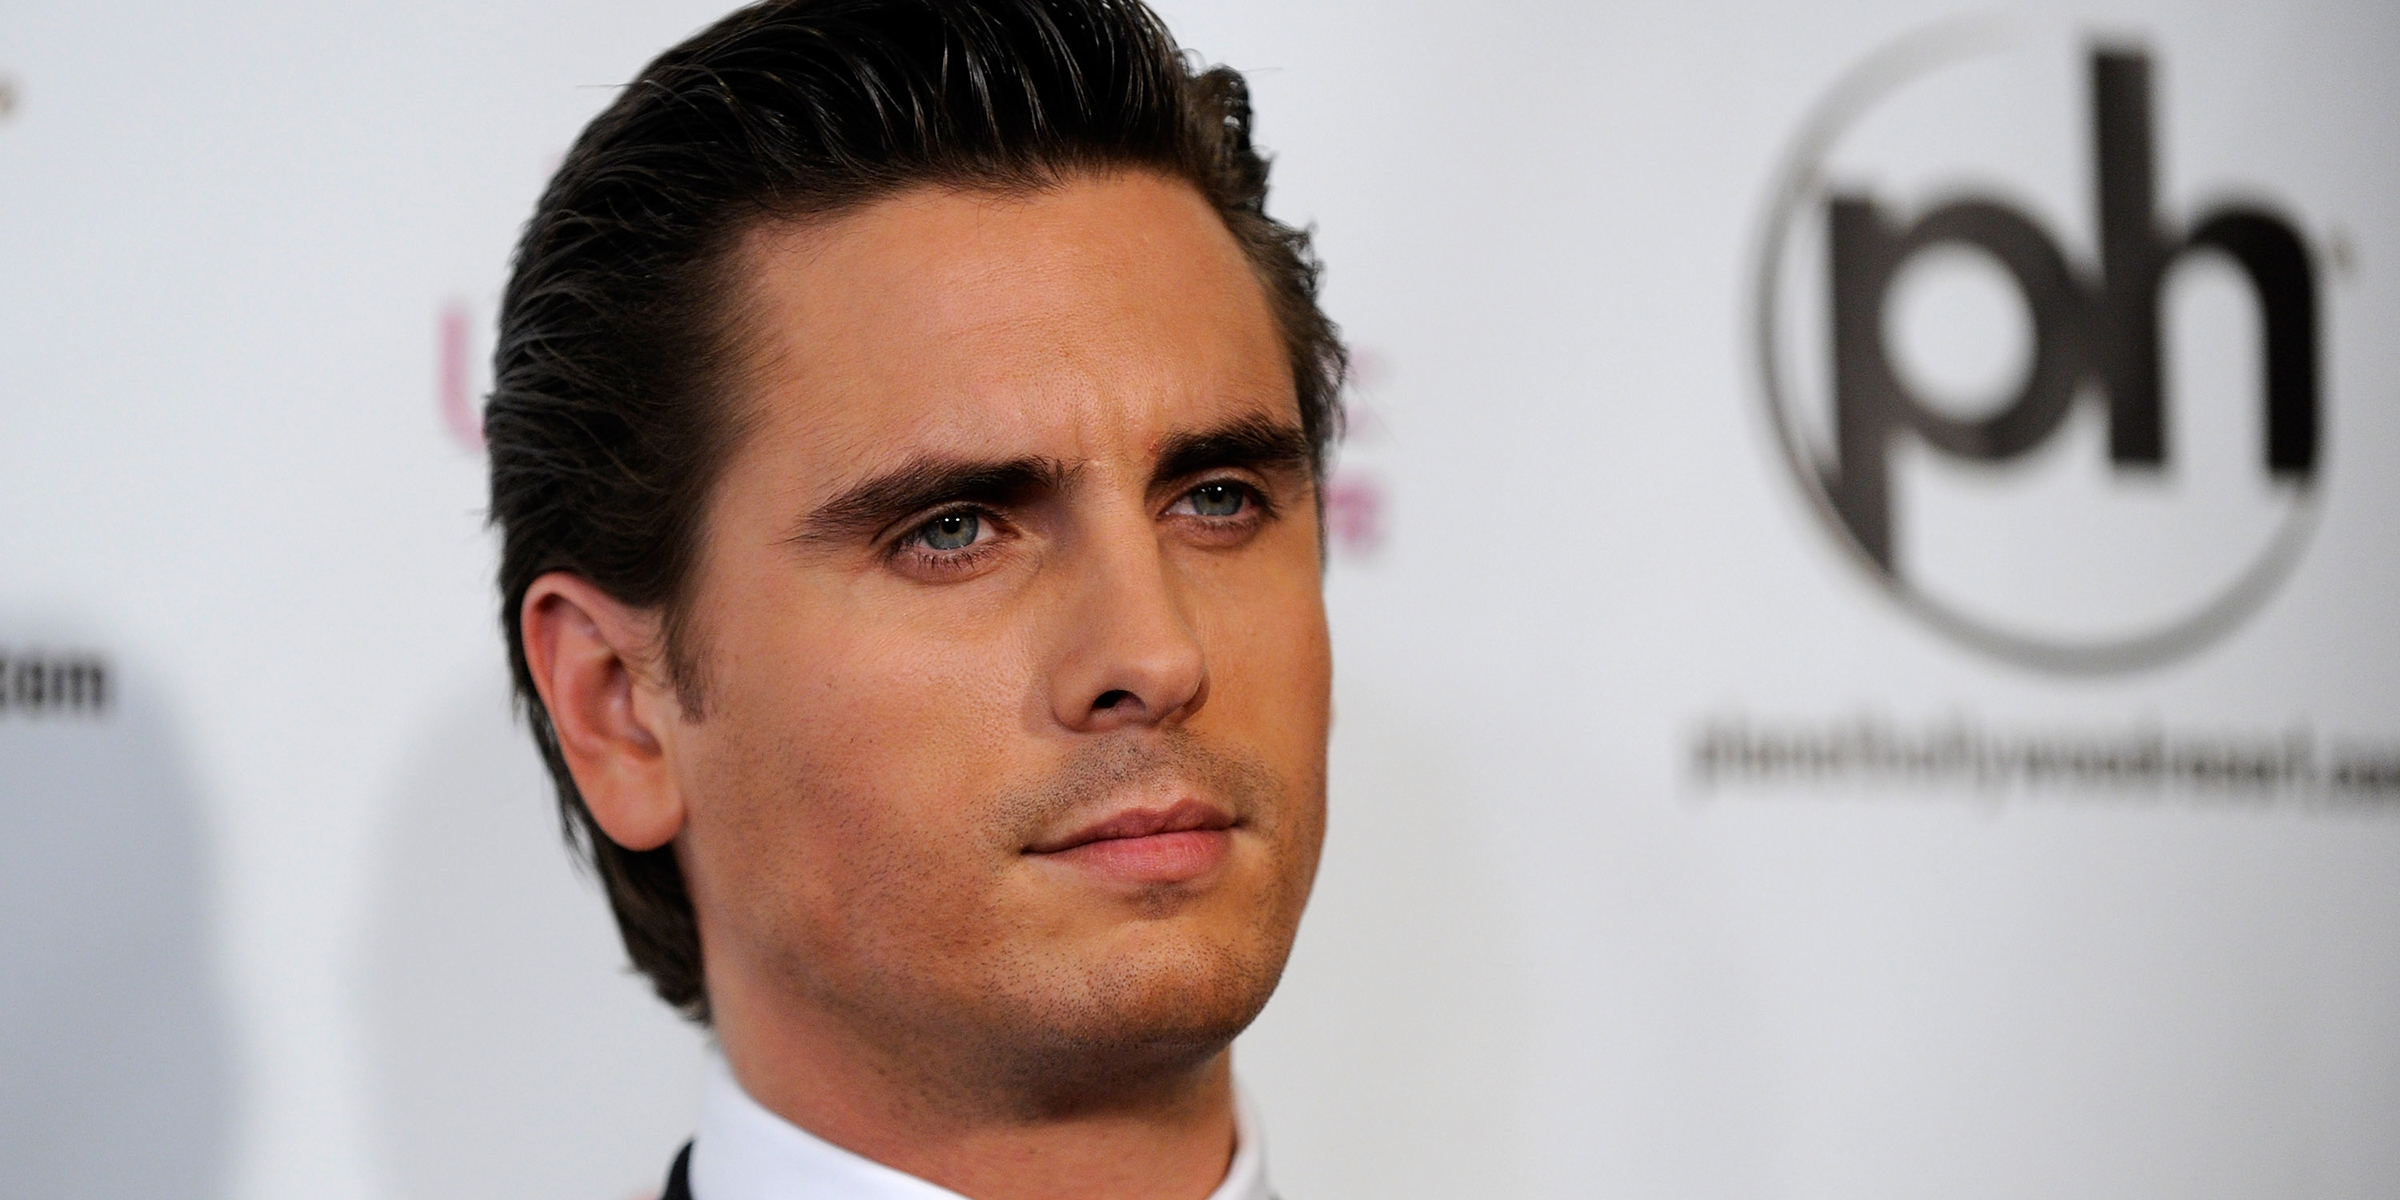 Scott Disick will star in a new home makeover show, 'Flip It Like Disick'